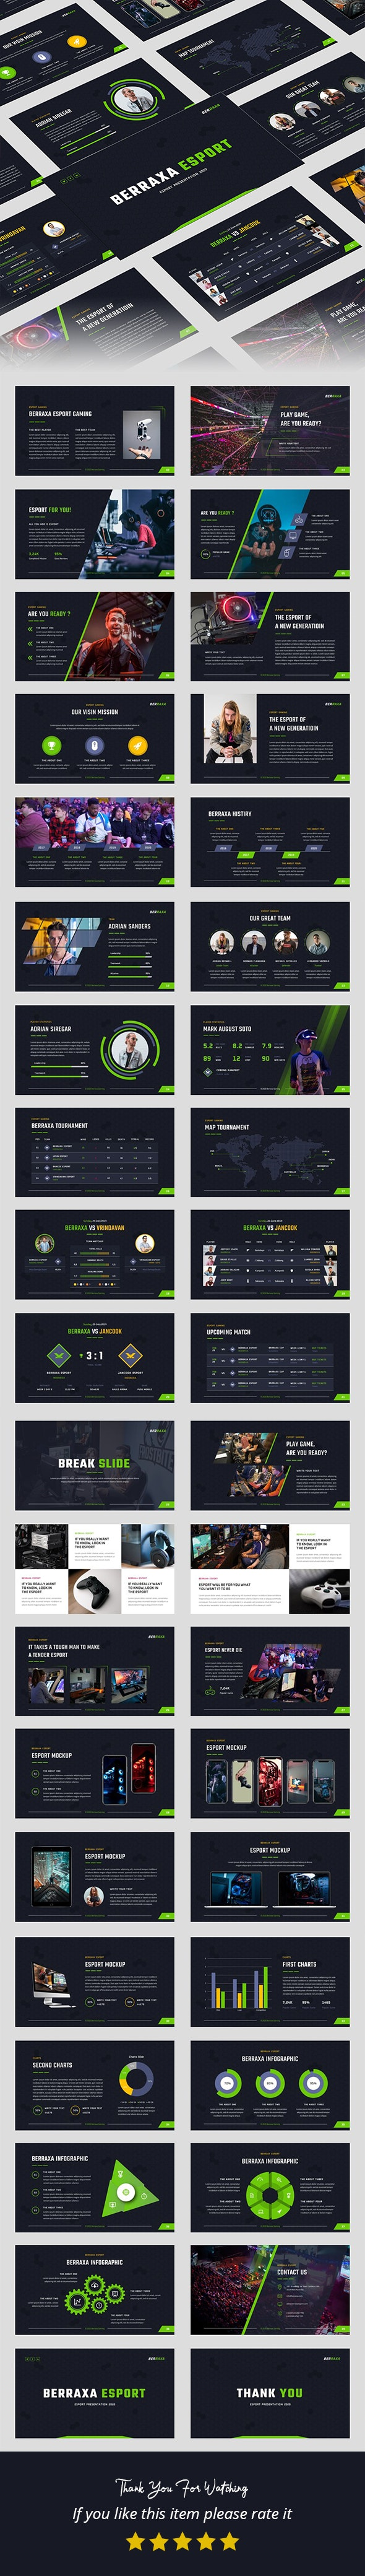 Berraxa – Esport Gaming Google Slides Template - Google Slides Presentation Templates